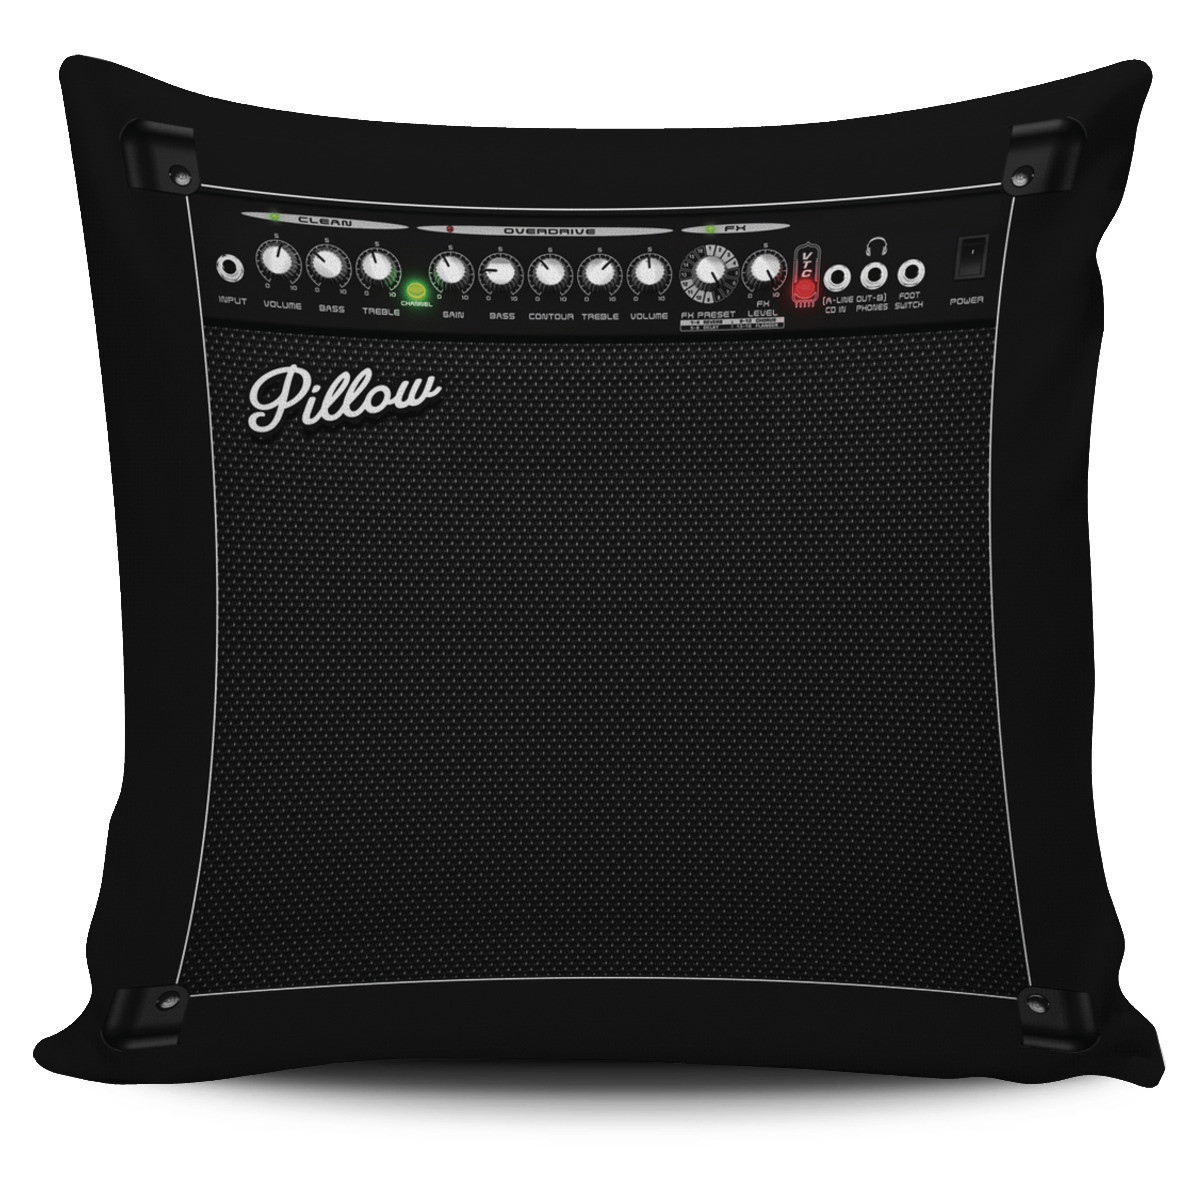 Guitar Pillow (Cushion) Covers Offer Wall